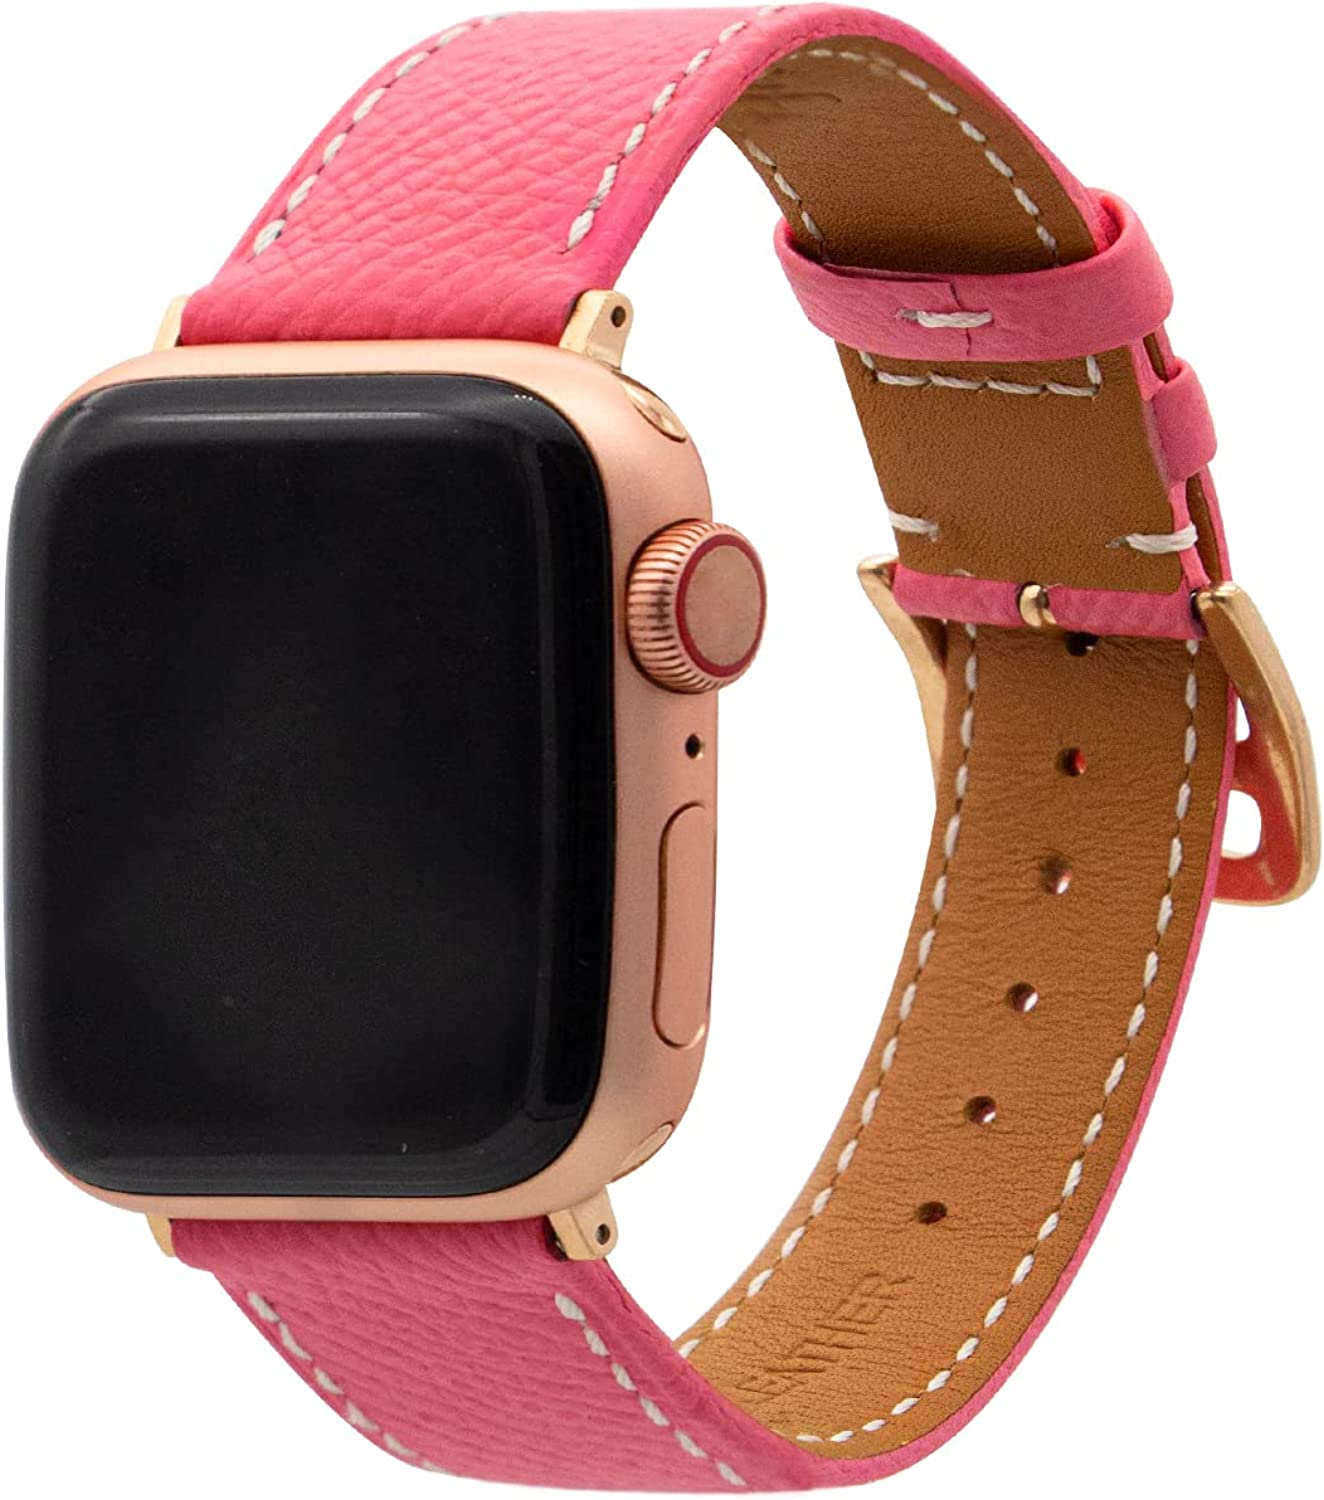 Heyon Genuine Leather Band Compatible with Apple Watch 38mm 40mm 42mm 44mm,Replacement Adjustable Watch Strap for iWatch Series 7/6/5/4/3/2/1/SE